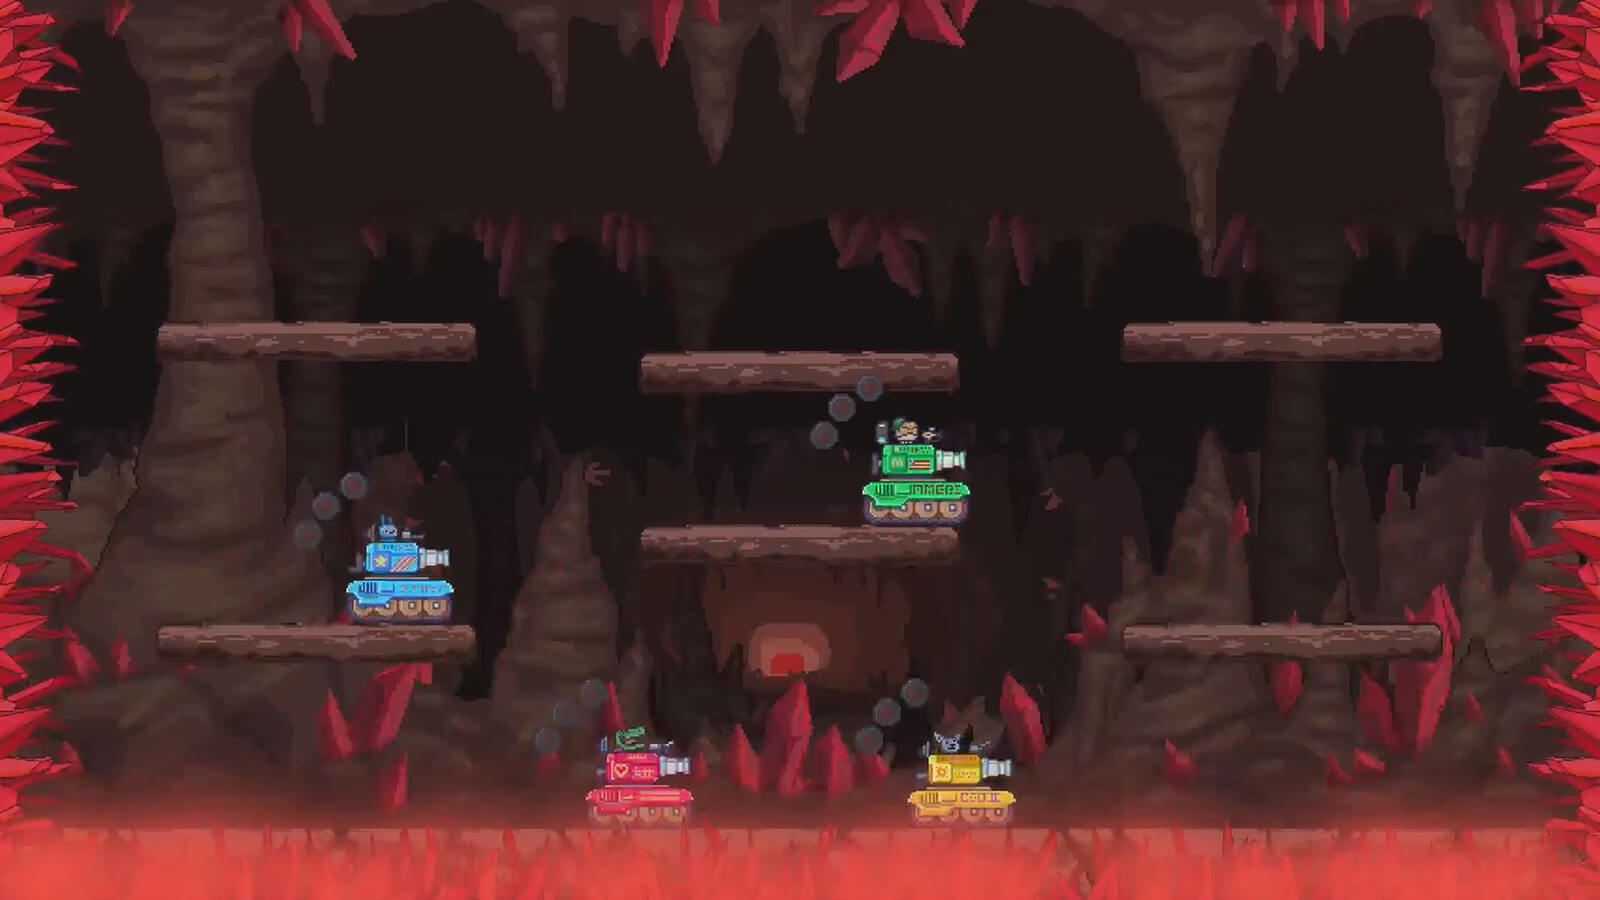 A green, yellow, blue and red tank fight in a room of sharp red crystals.